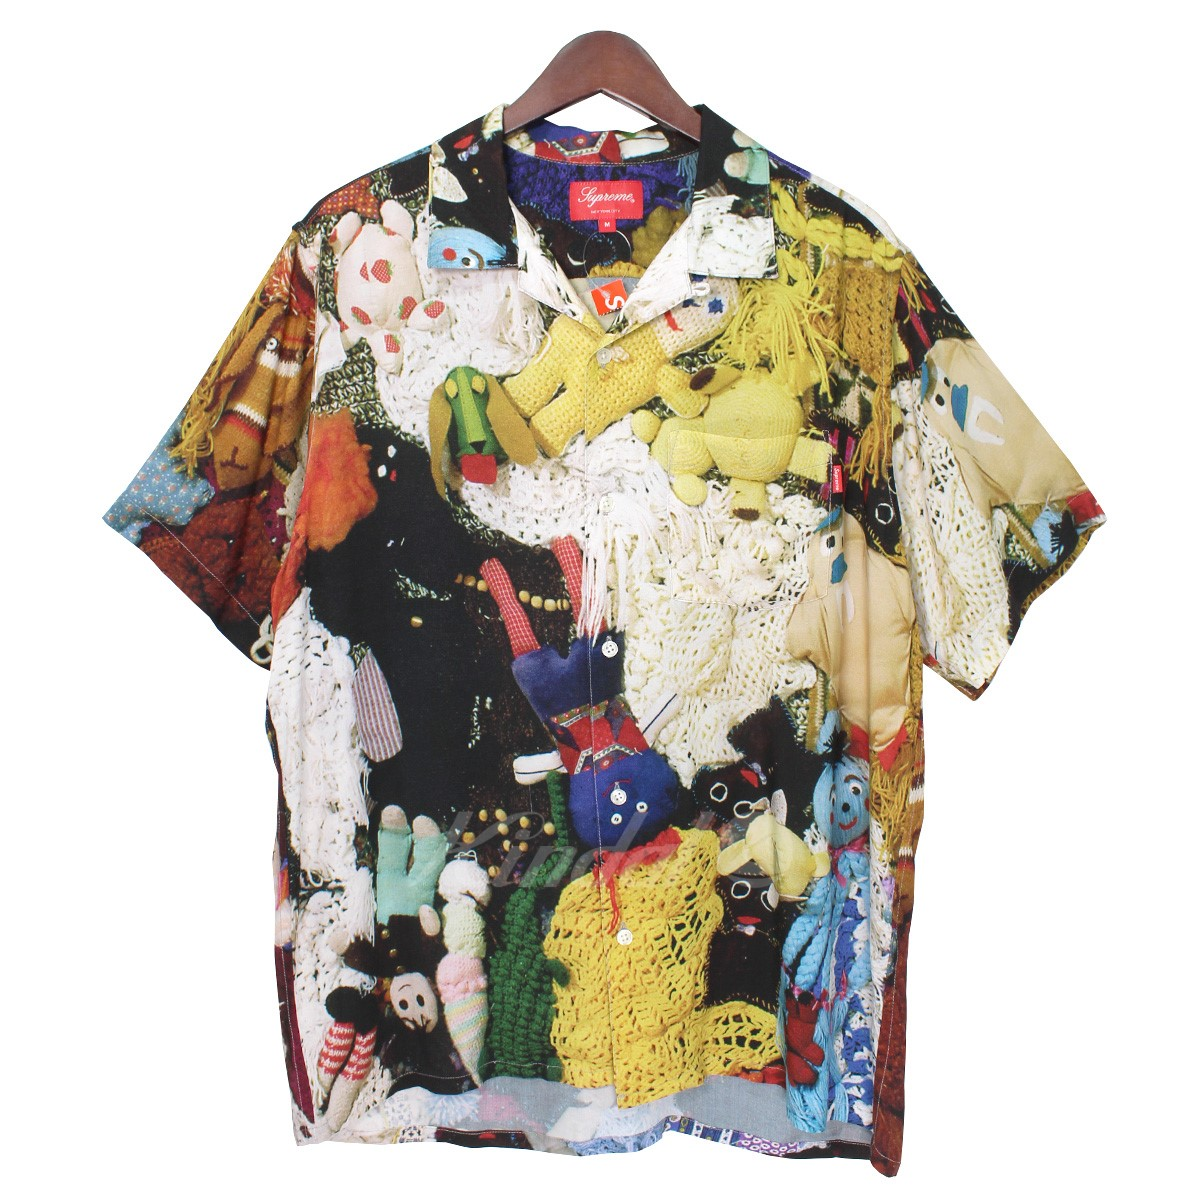 【中古】Supreme×Mike Kelley More love Hour Than Can Ever Be Repaid Rayon Shirt マルチ サイズ:M 【送料無料】 【021018】(シュプリーム マイクケリー)